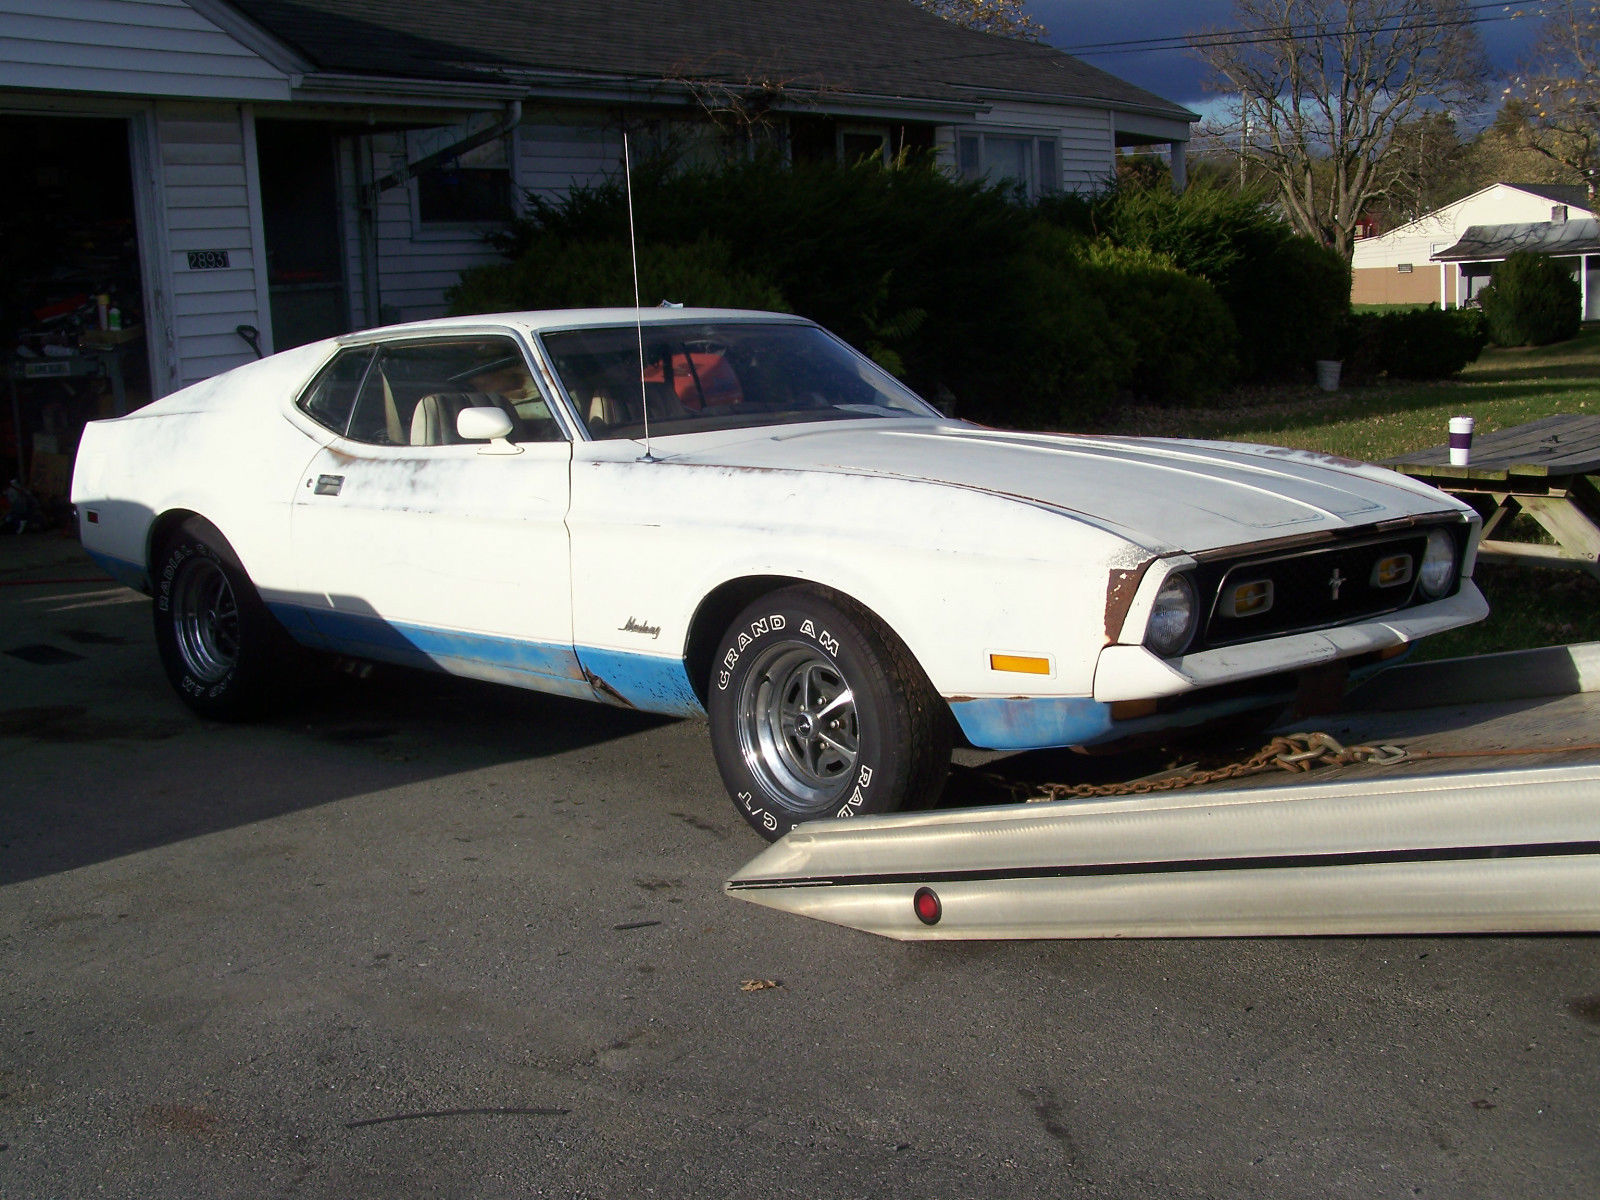 1972 ford mustang fastback sprint edition q code cobra jet project car